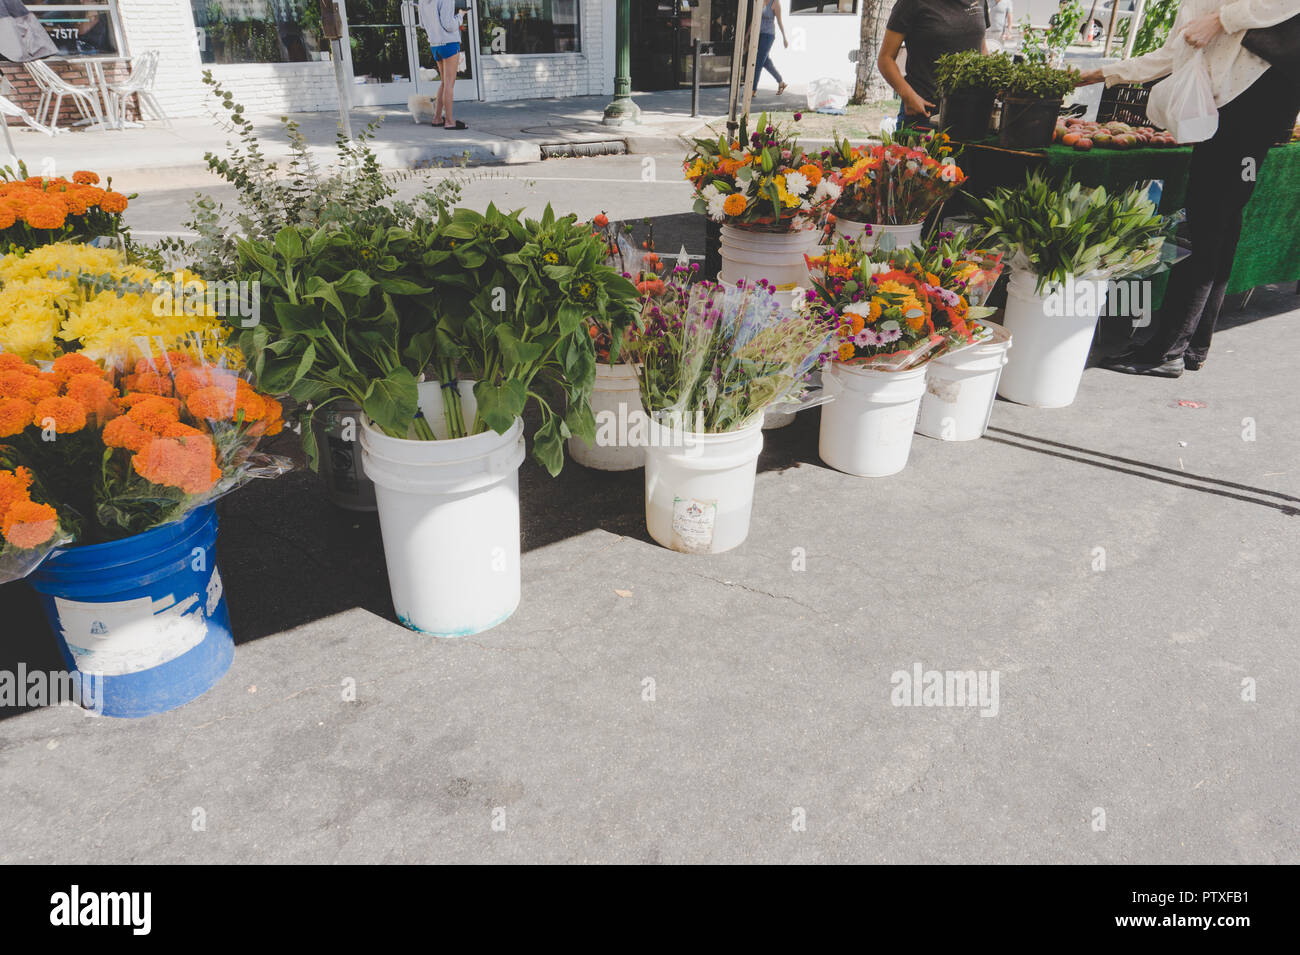 Southern California flower stand at Farmers market: Gorgeous flowers for sale on display in white buckets, natural light. - Stock Image